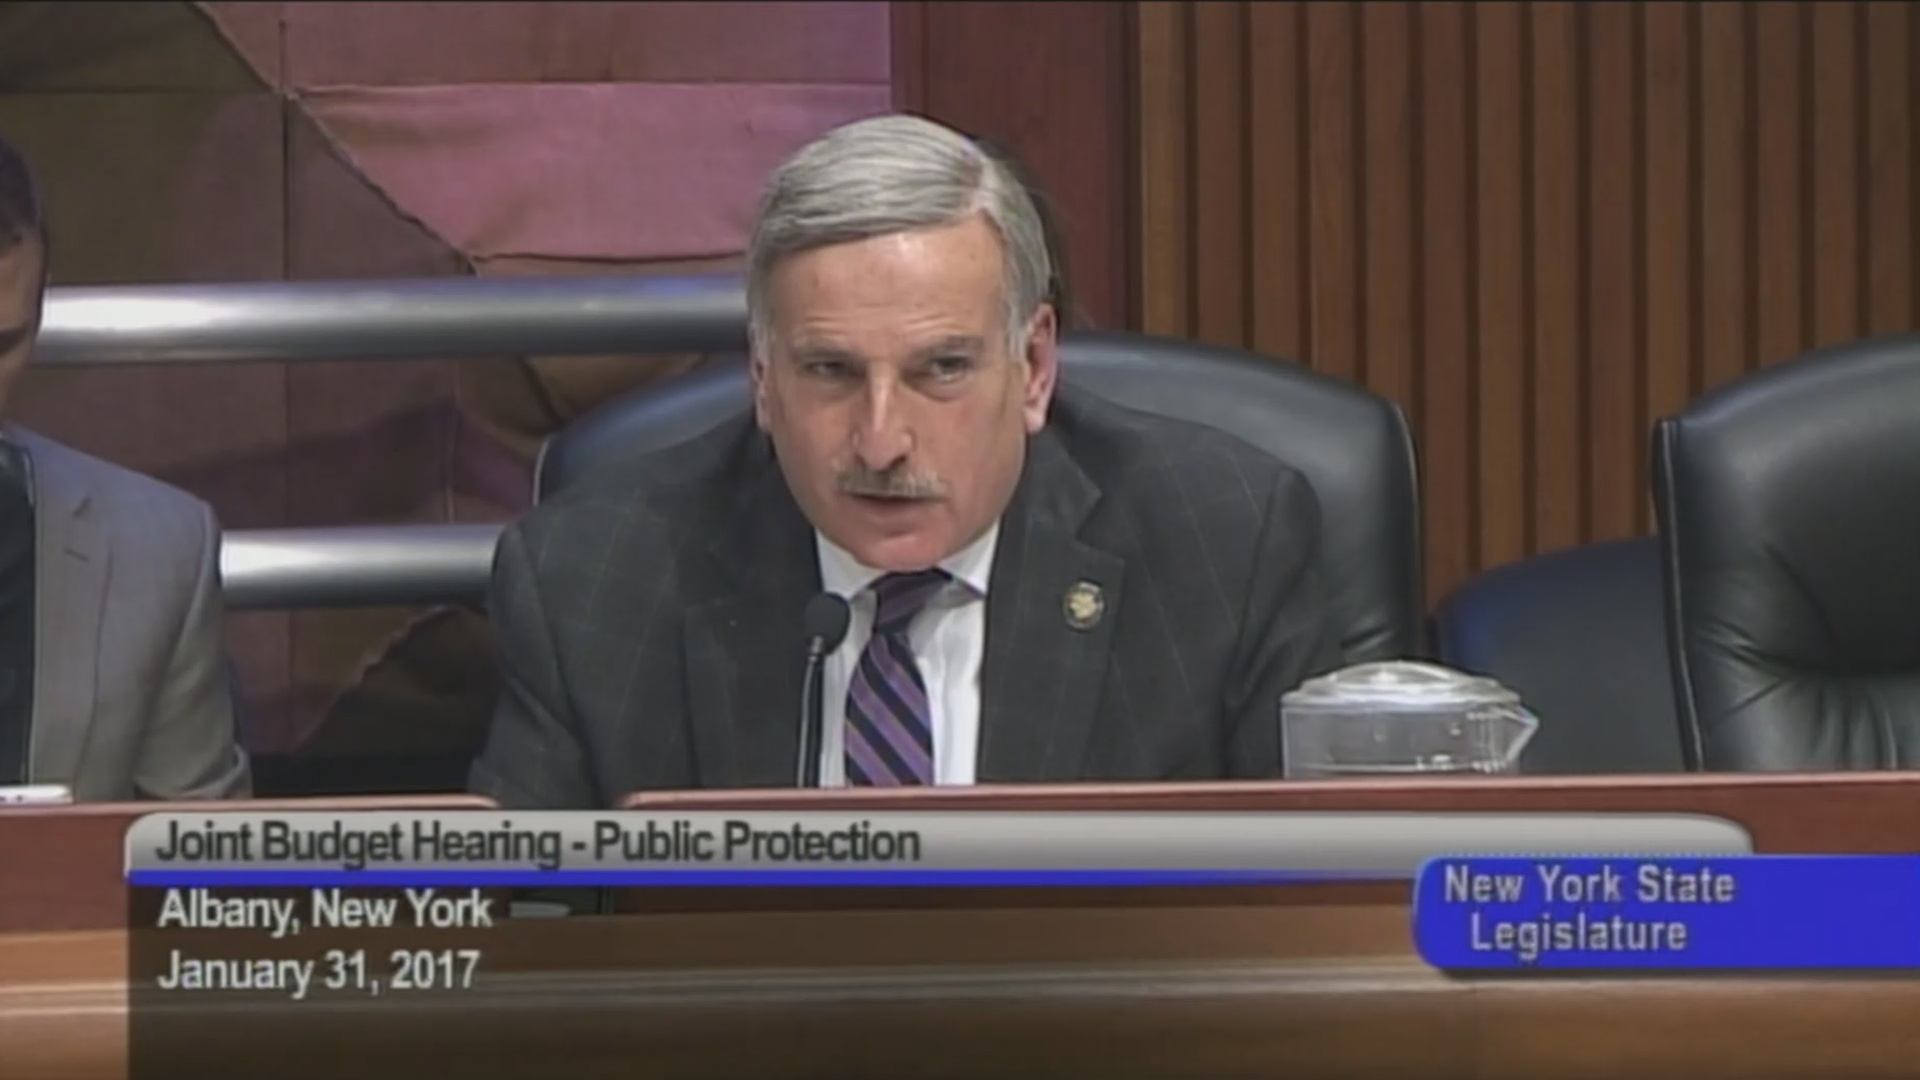 Budget Hearing On Funding Public Protection